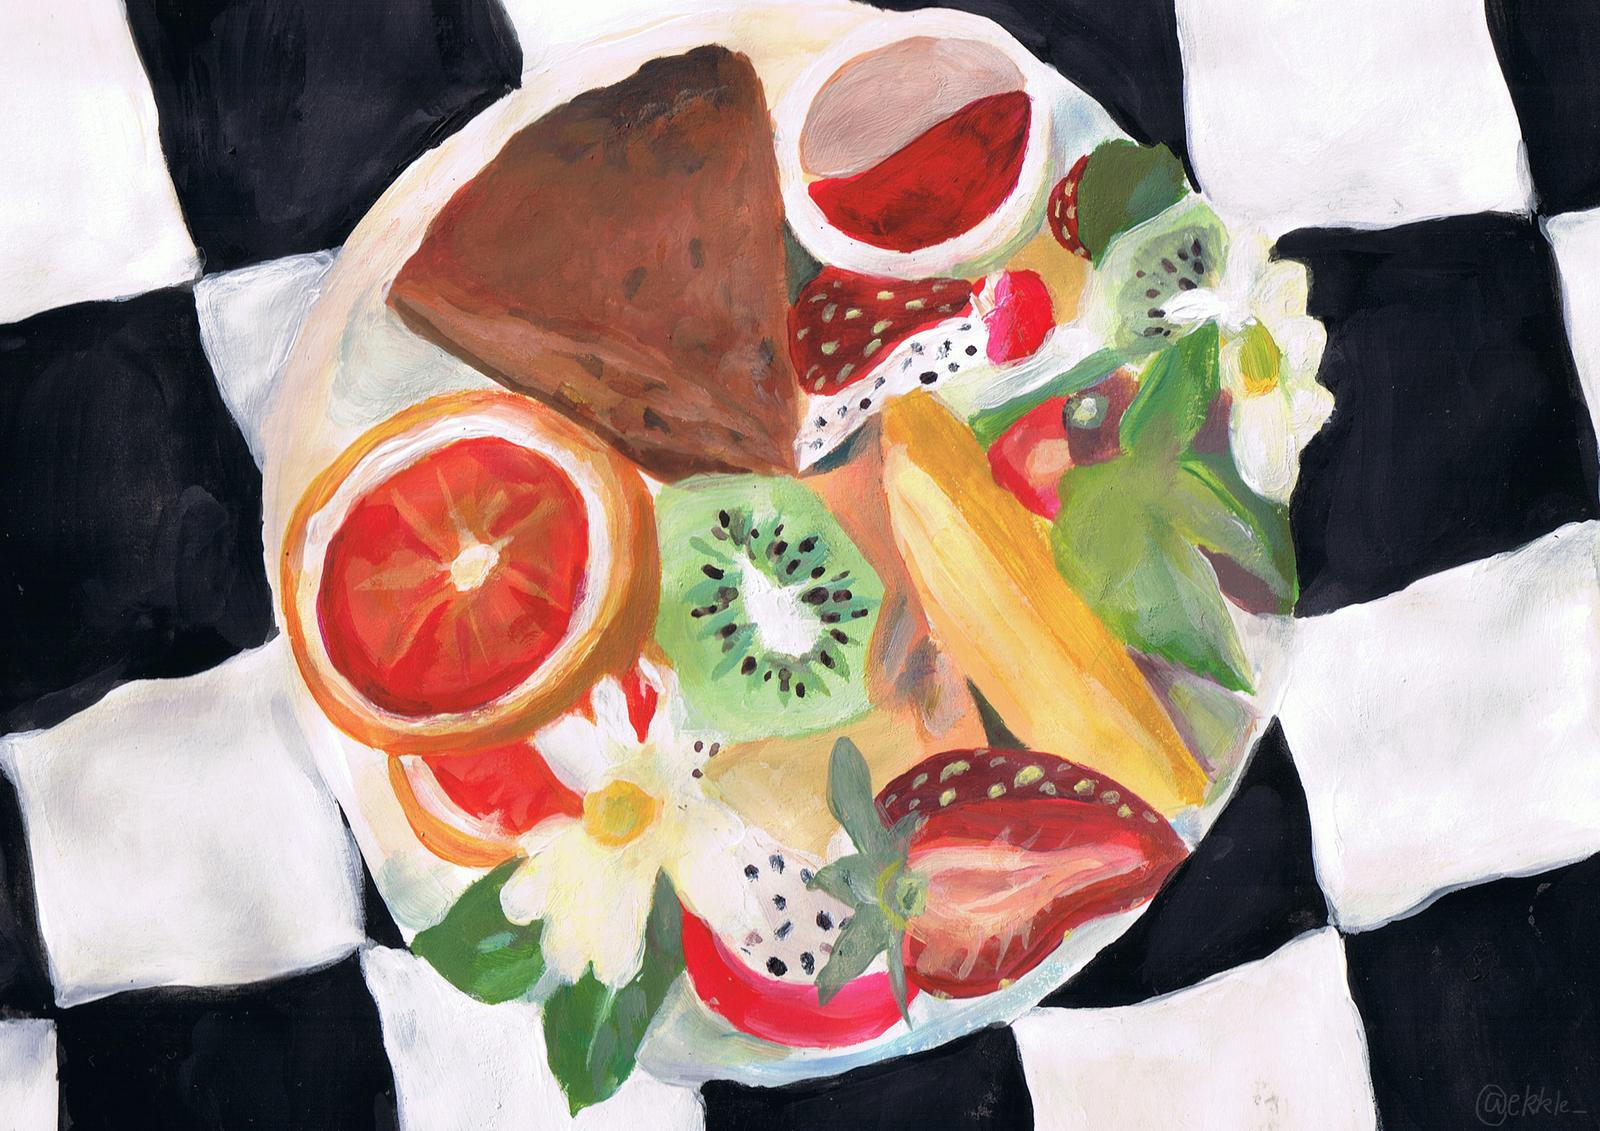 The Fruit and Cake print